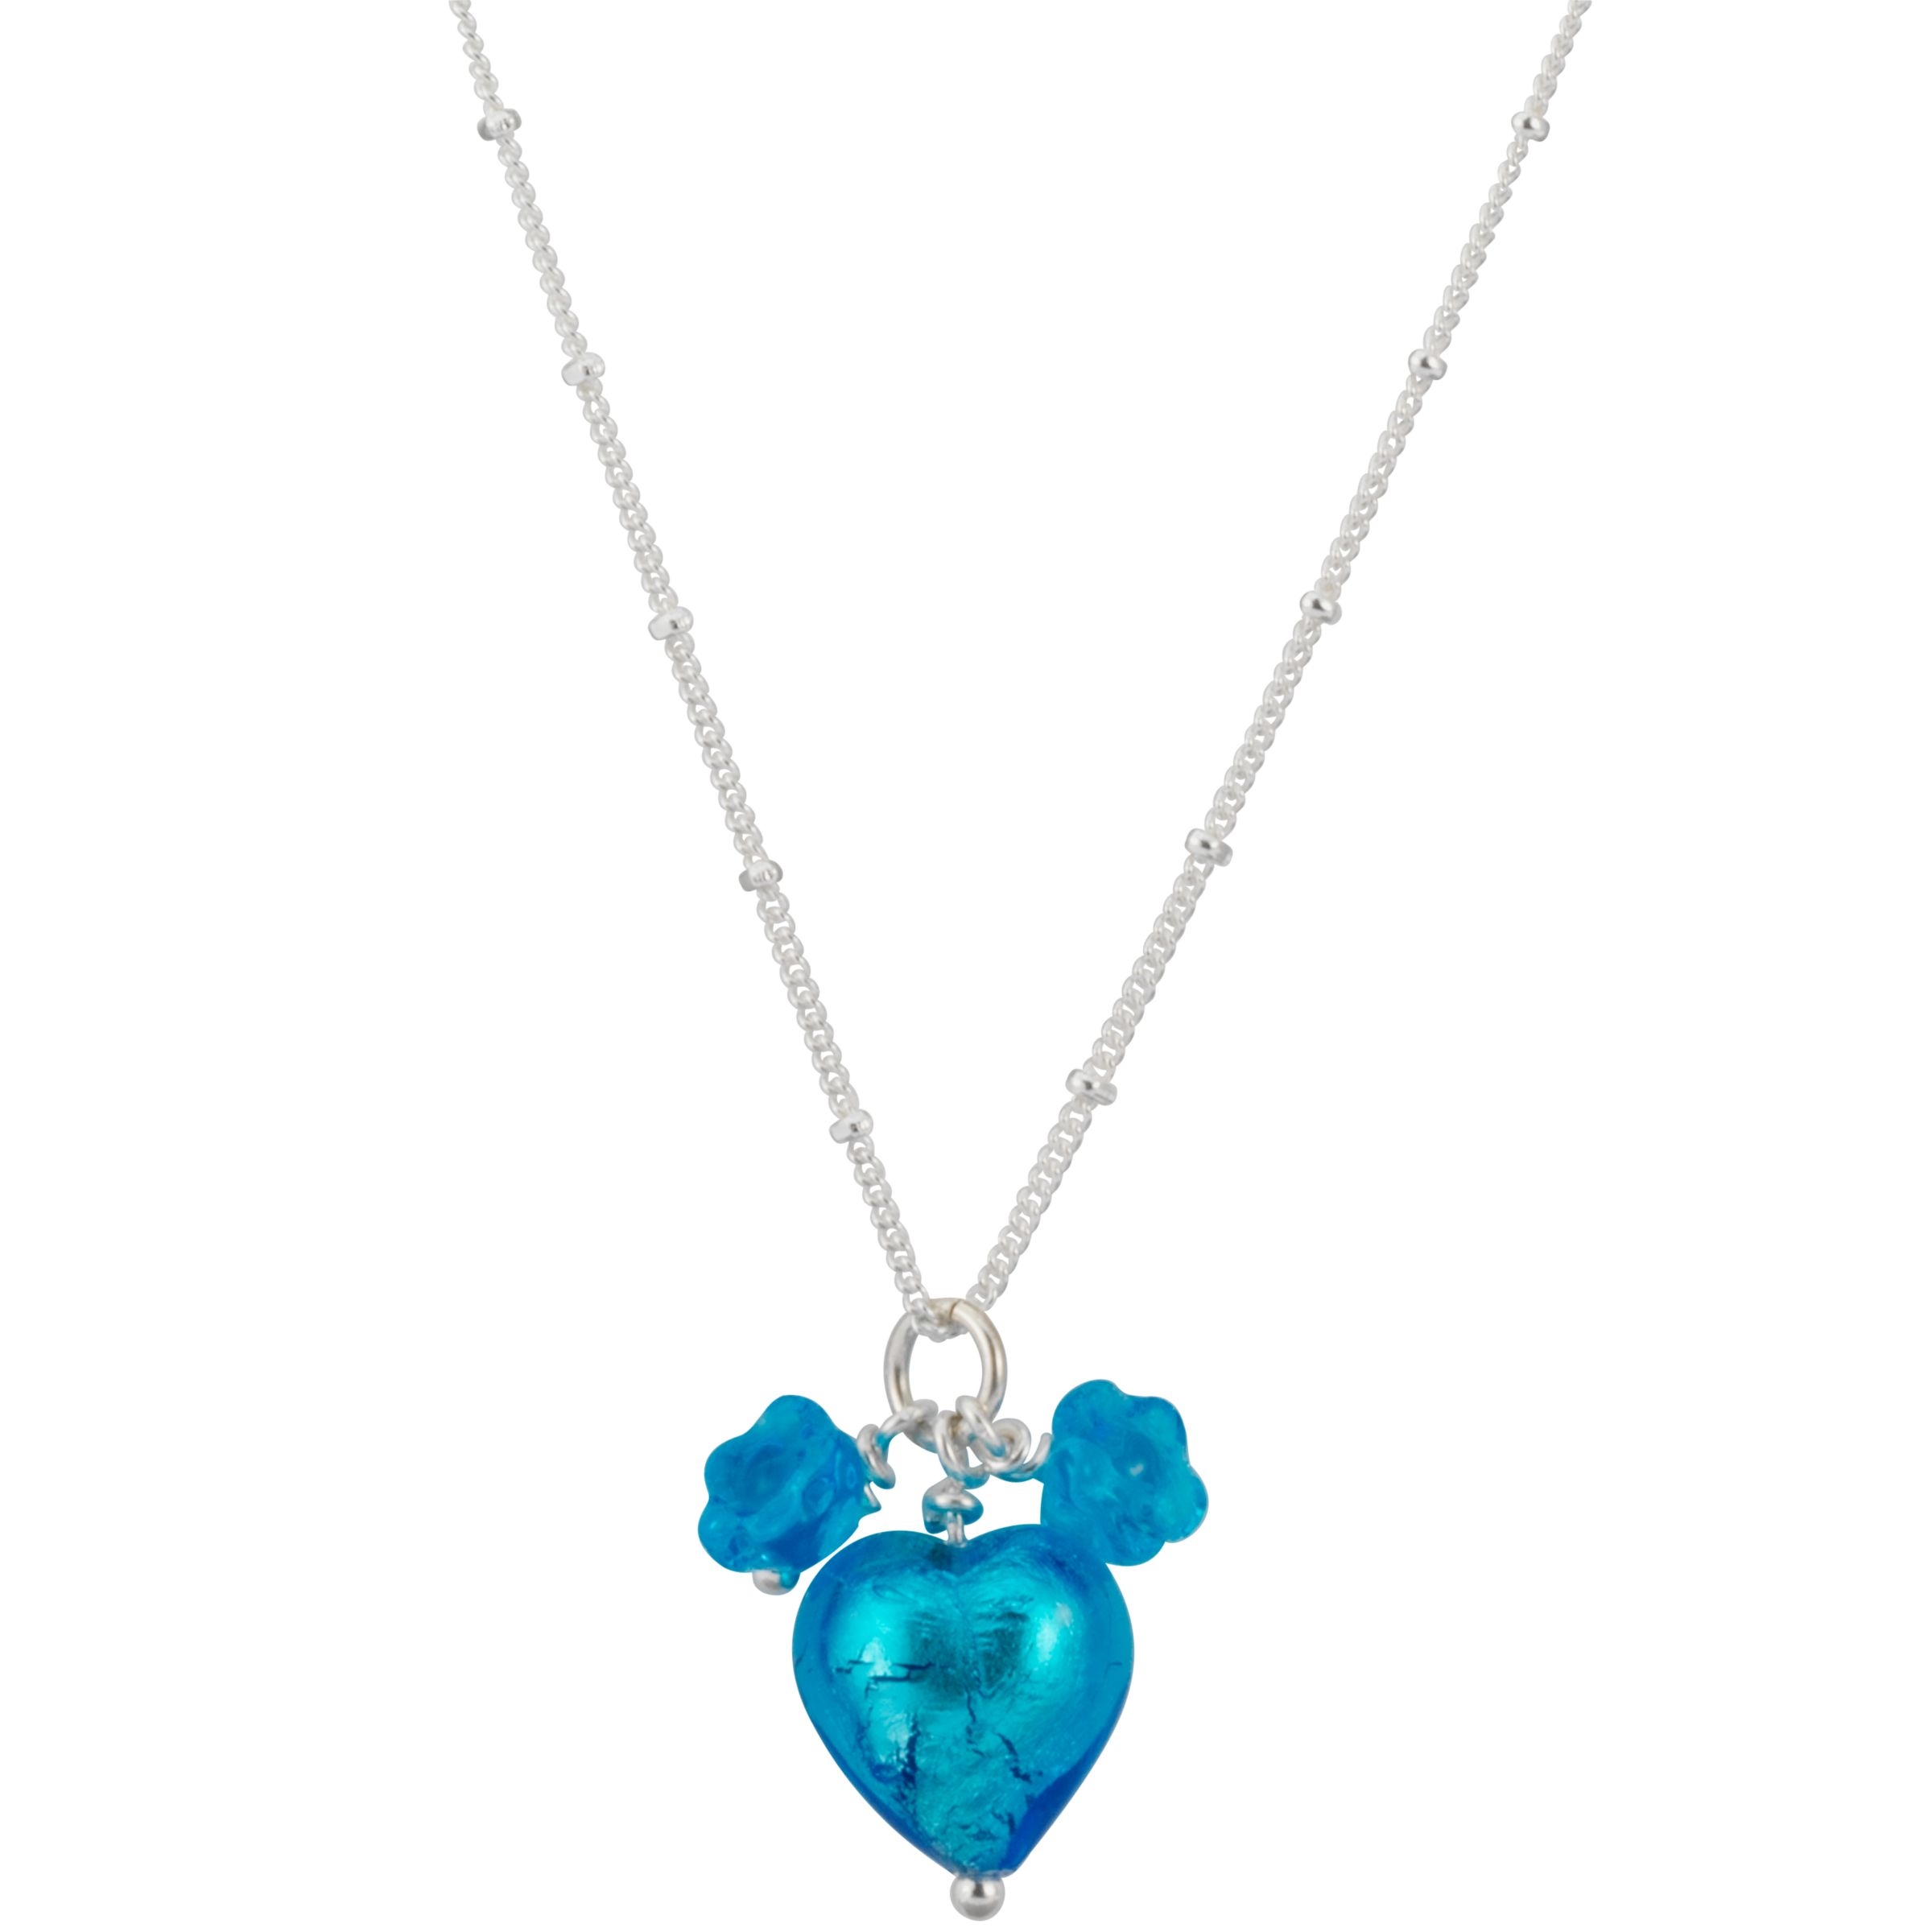 Martick Jewellery Murano Glass Heart Pendant Necklace, Turquoise